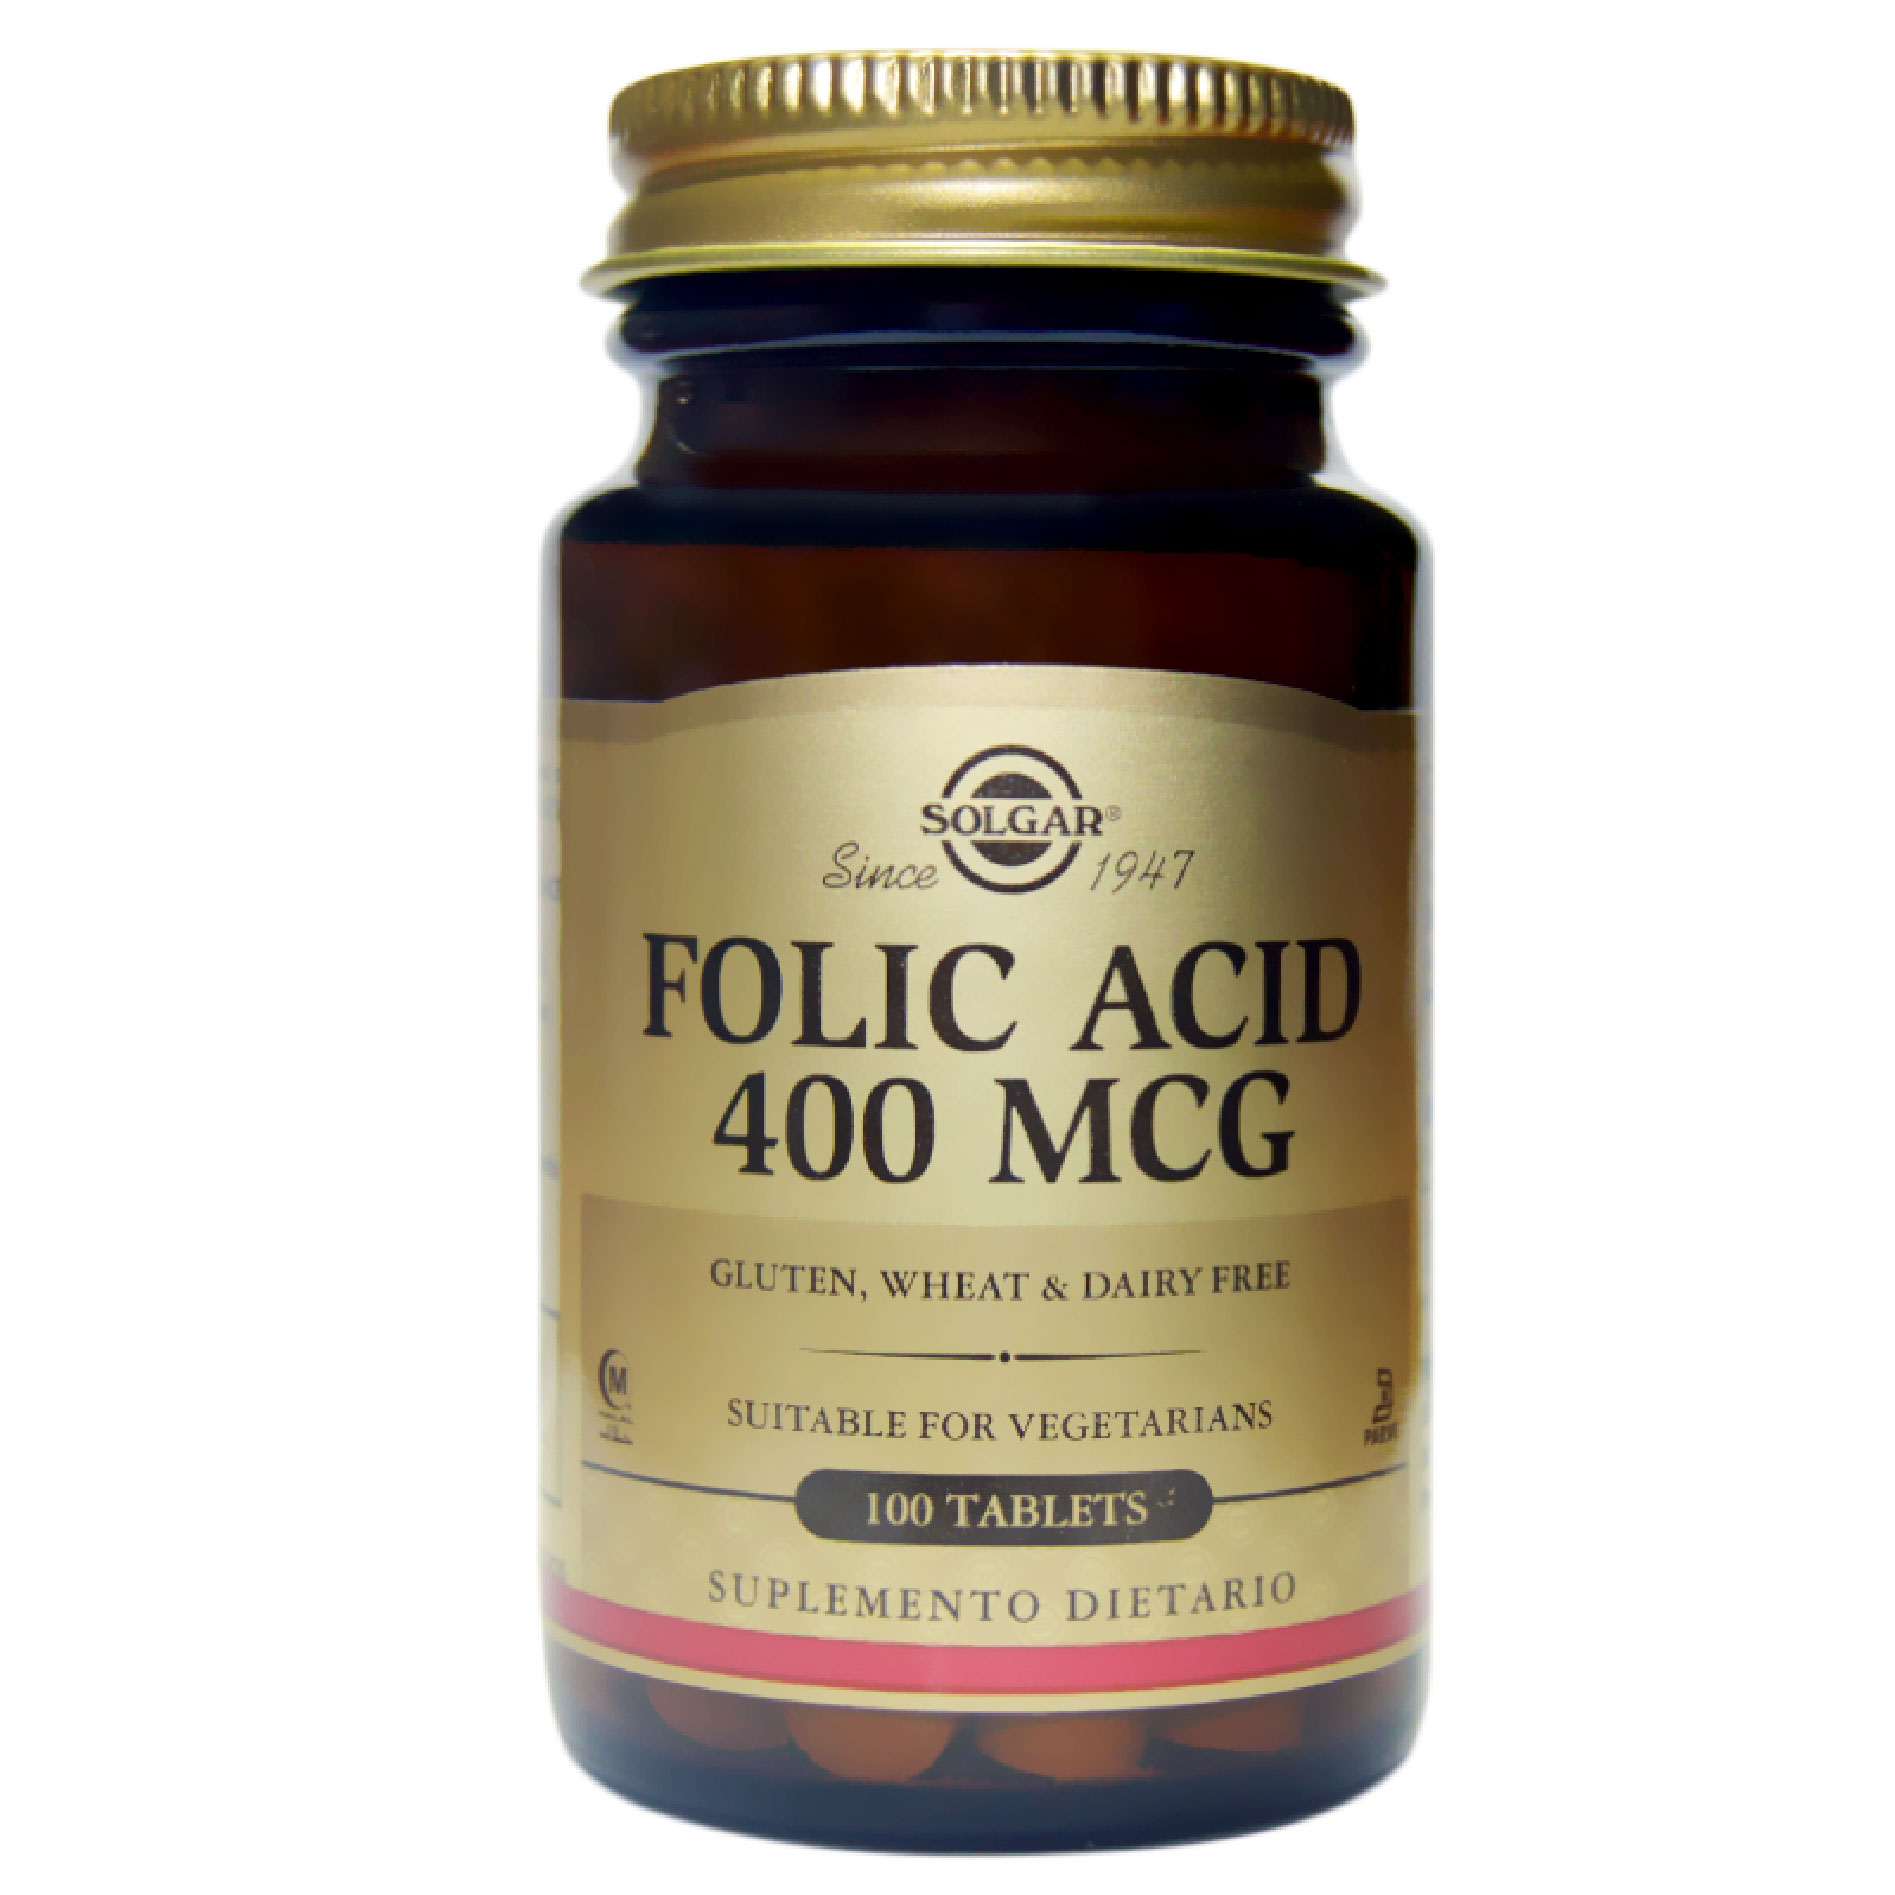 FOLIC ACID 400 MCG 100 TAB